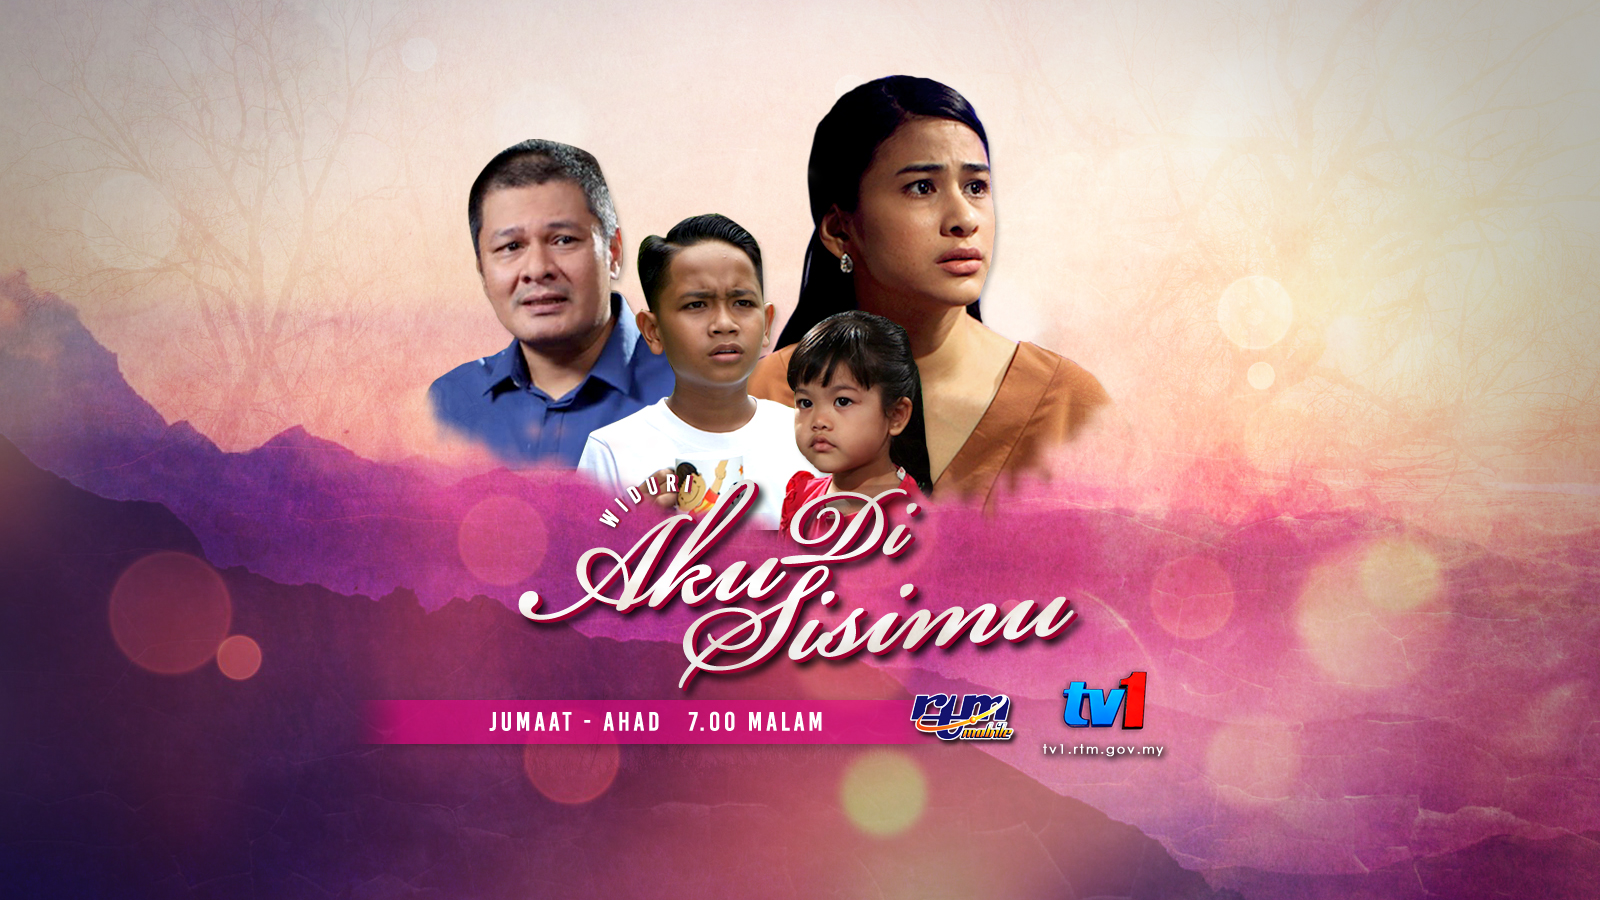 Tonton Aku Di Sisimu (TV1) Streaming